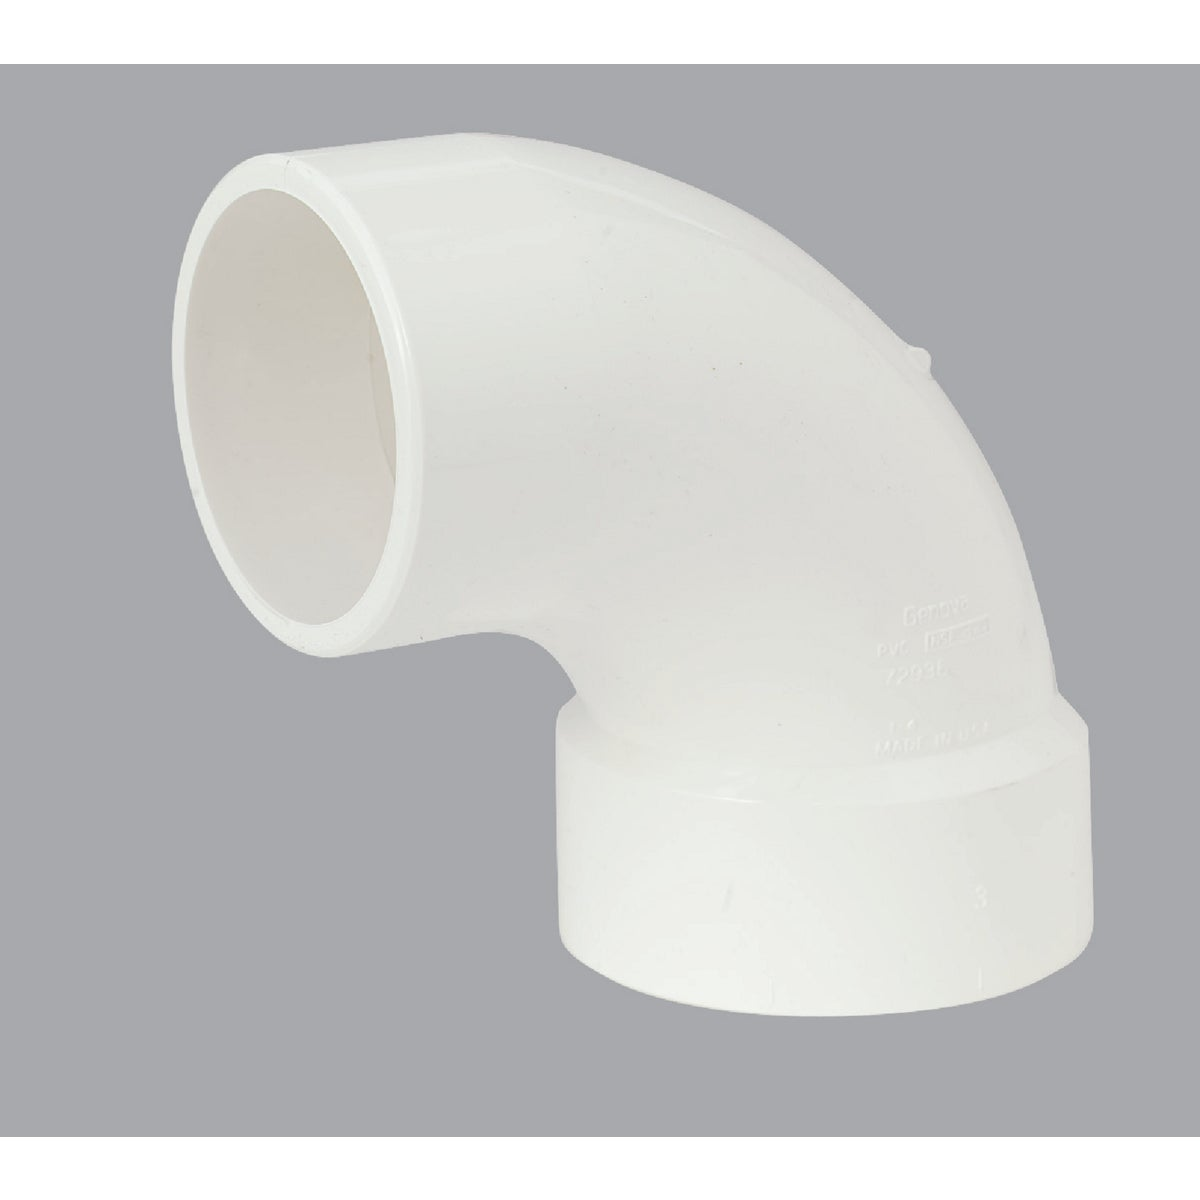 "3""90D DWV SANI STR ELBOW - 72936 by Genova Inc  Pvc Dwv"